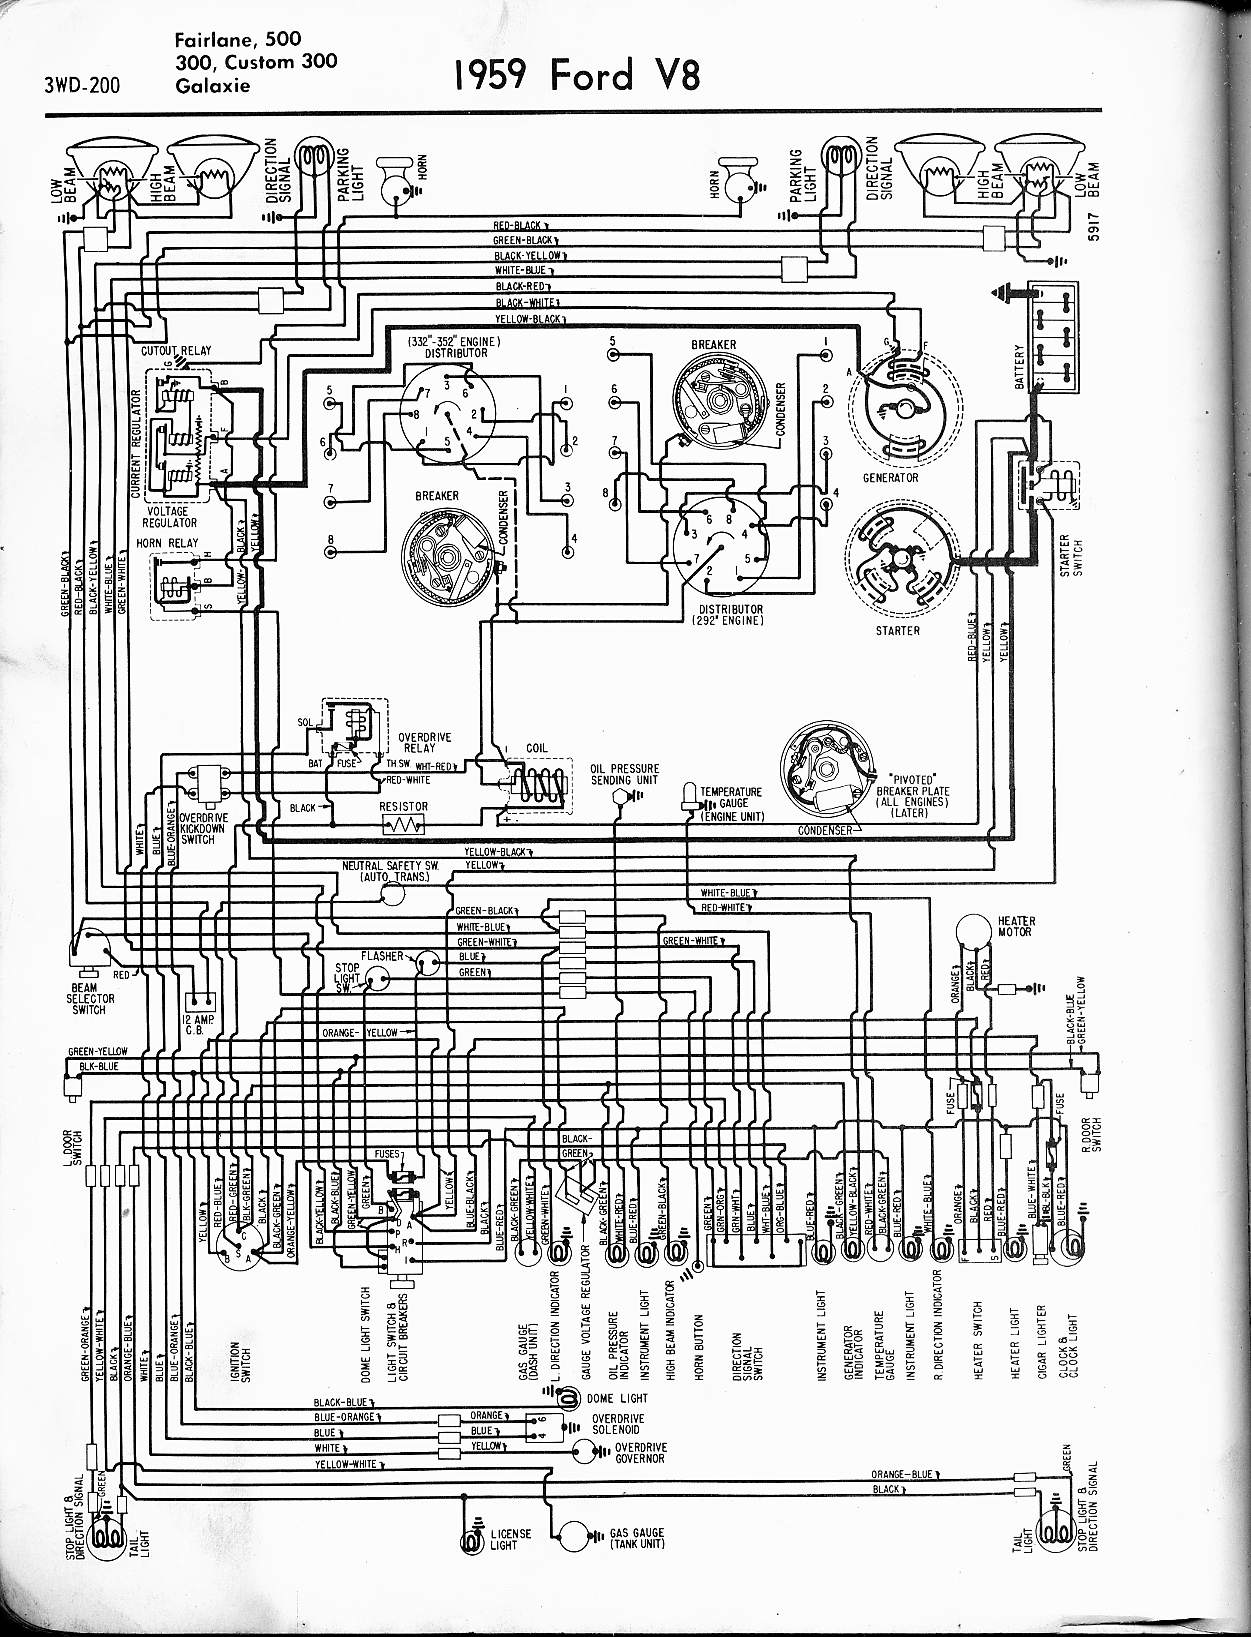 57 65 ford wiring diagrams1959 v8 fairlane, 500, 300, custom 300